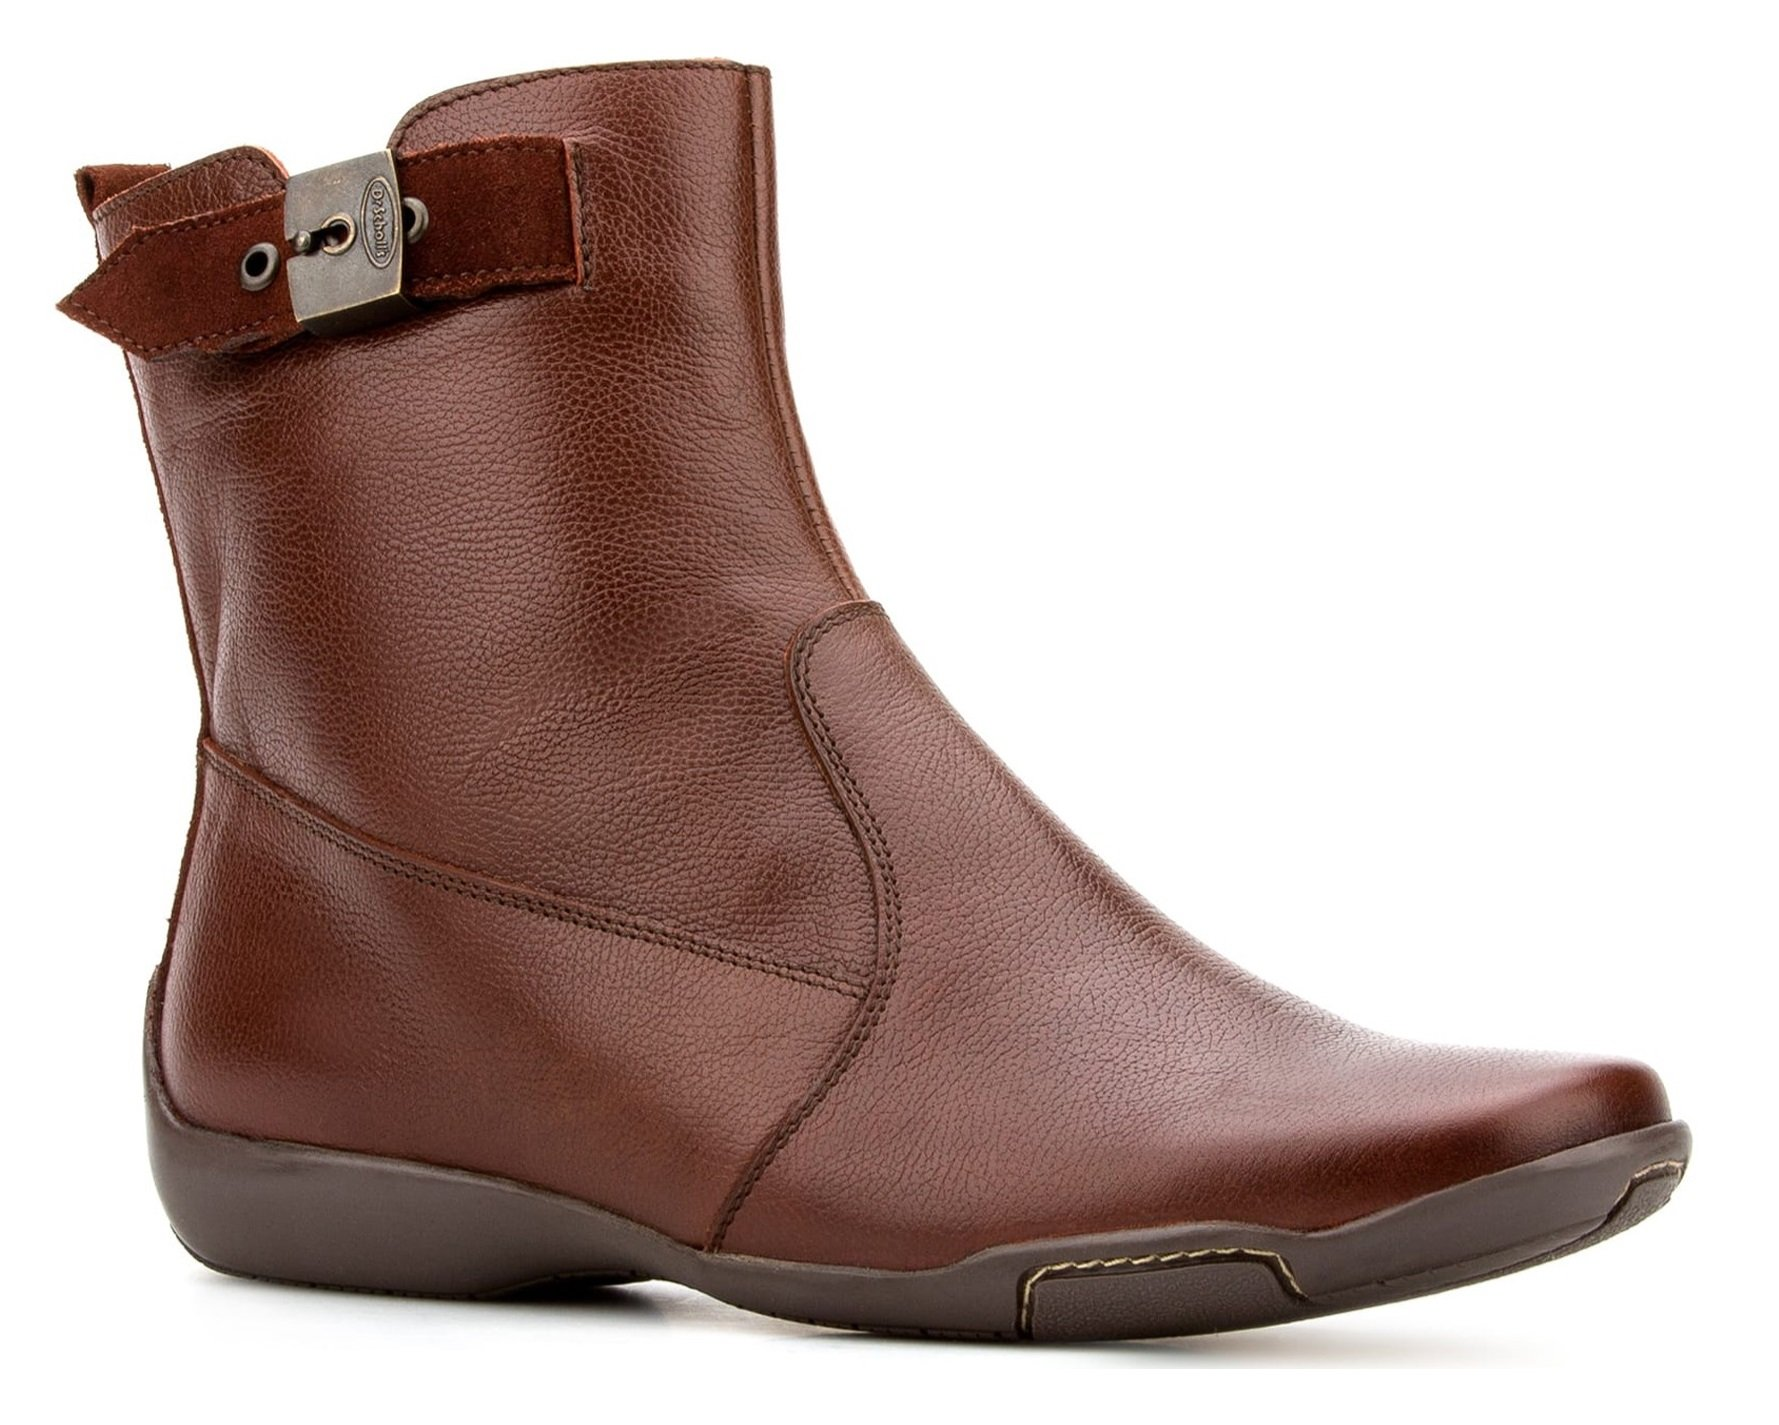 Dr. Scholl's Comfort Women Shoes Gel Cushion Genuine Leather Brown Flat Ankle Boot (8)